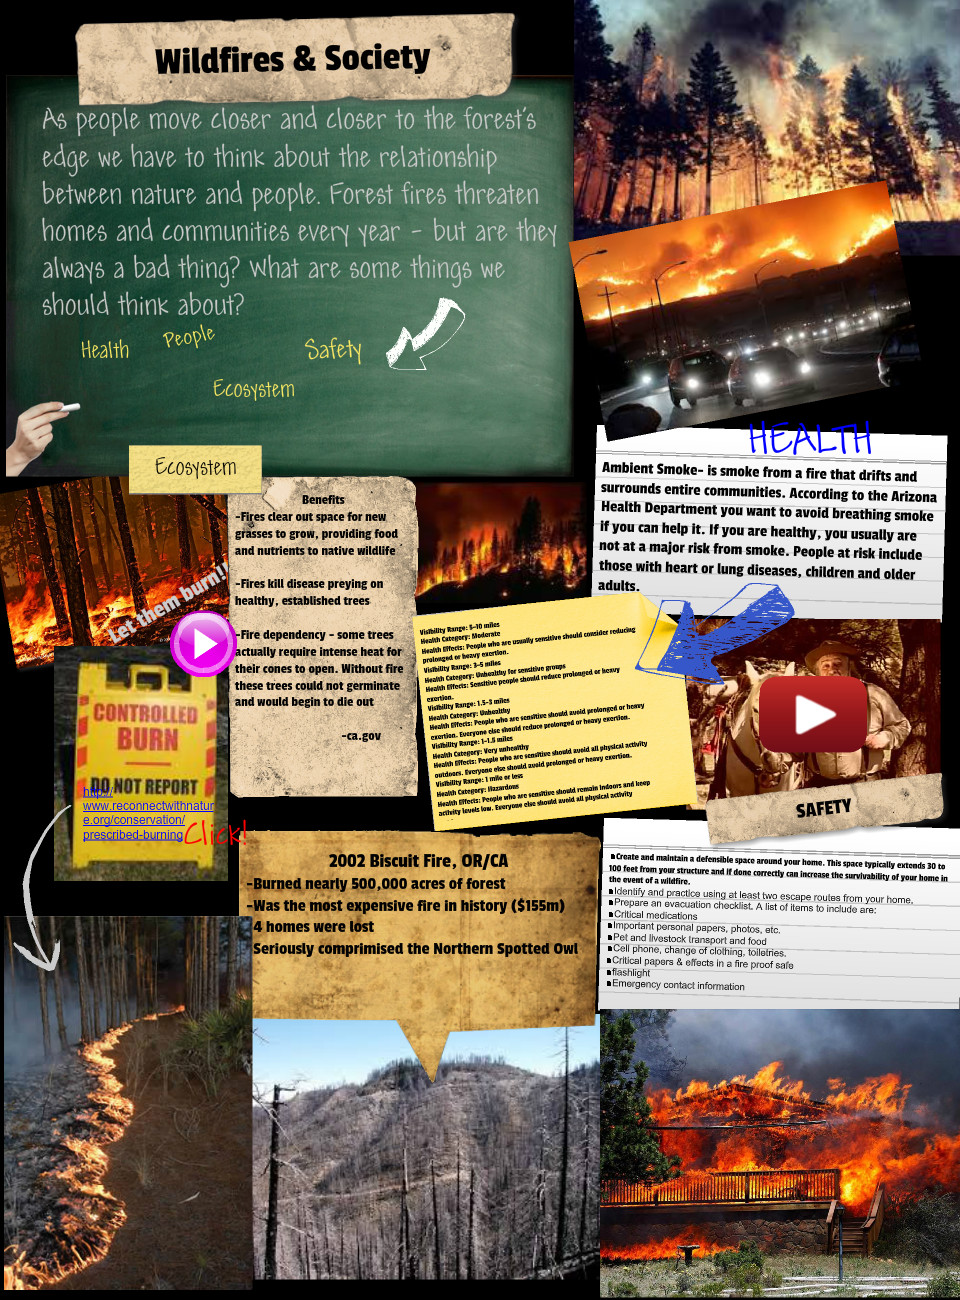 Wildfires & Society